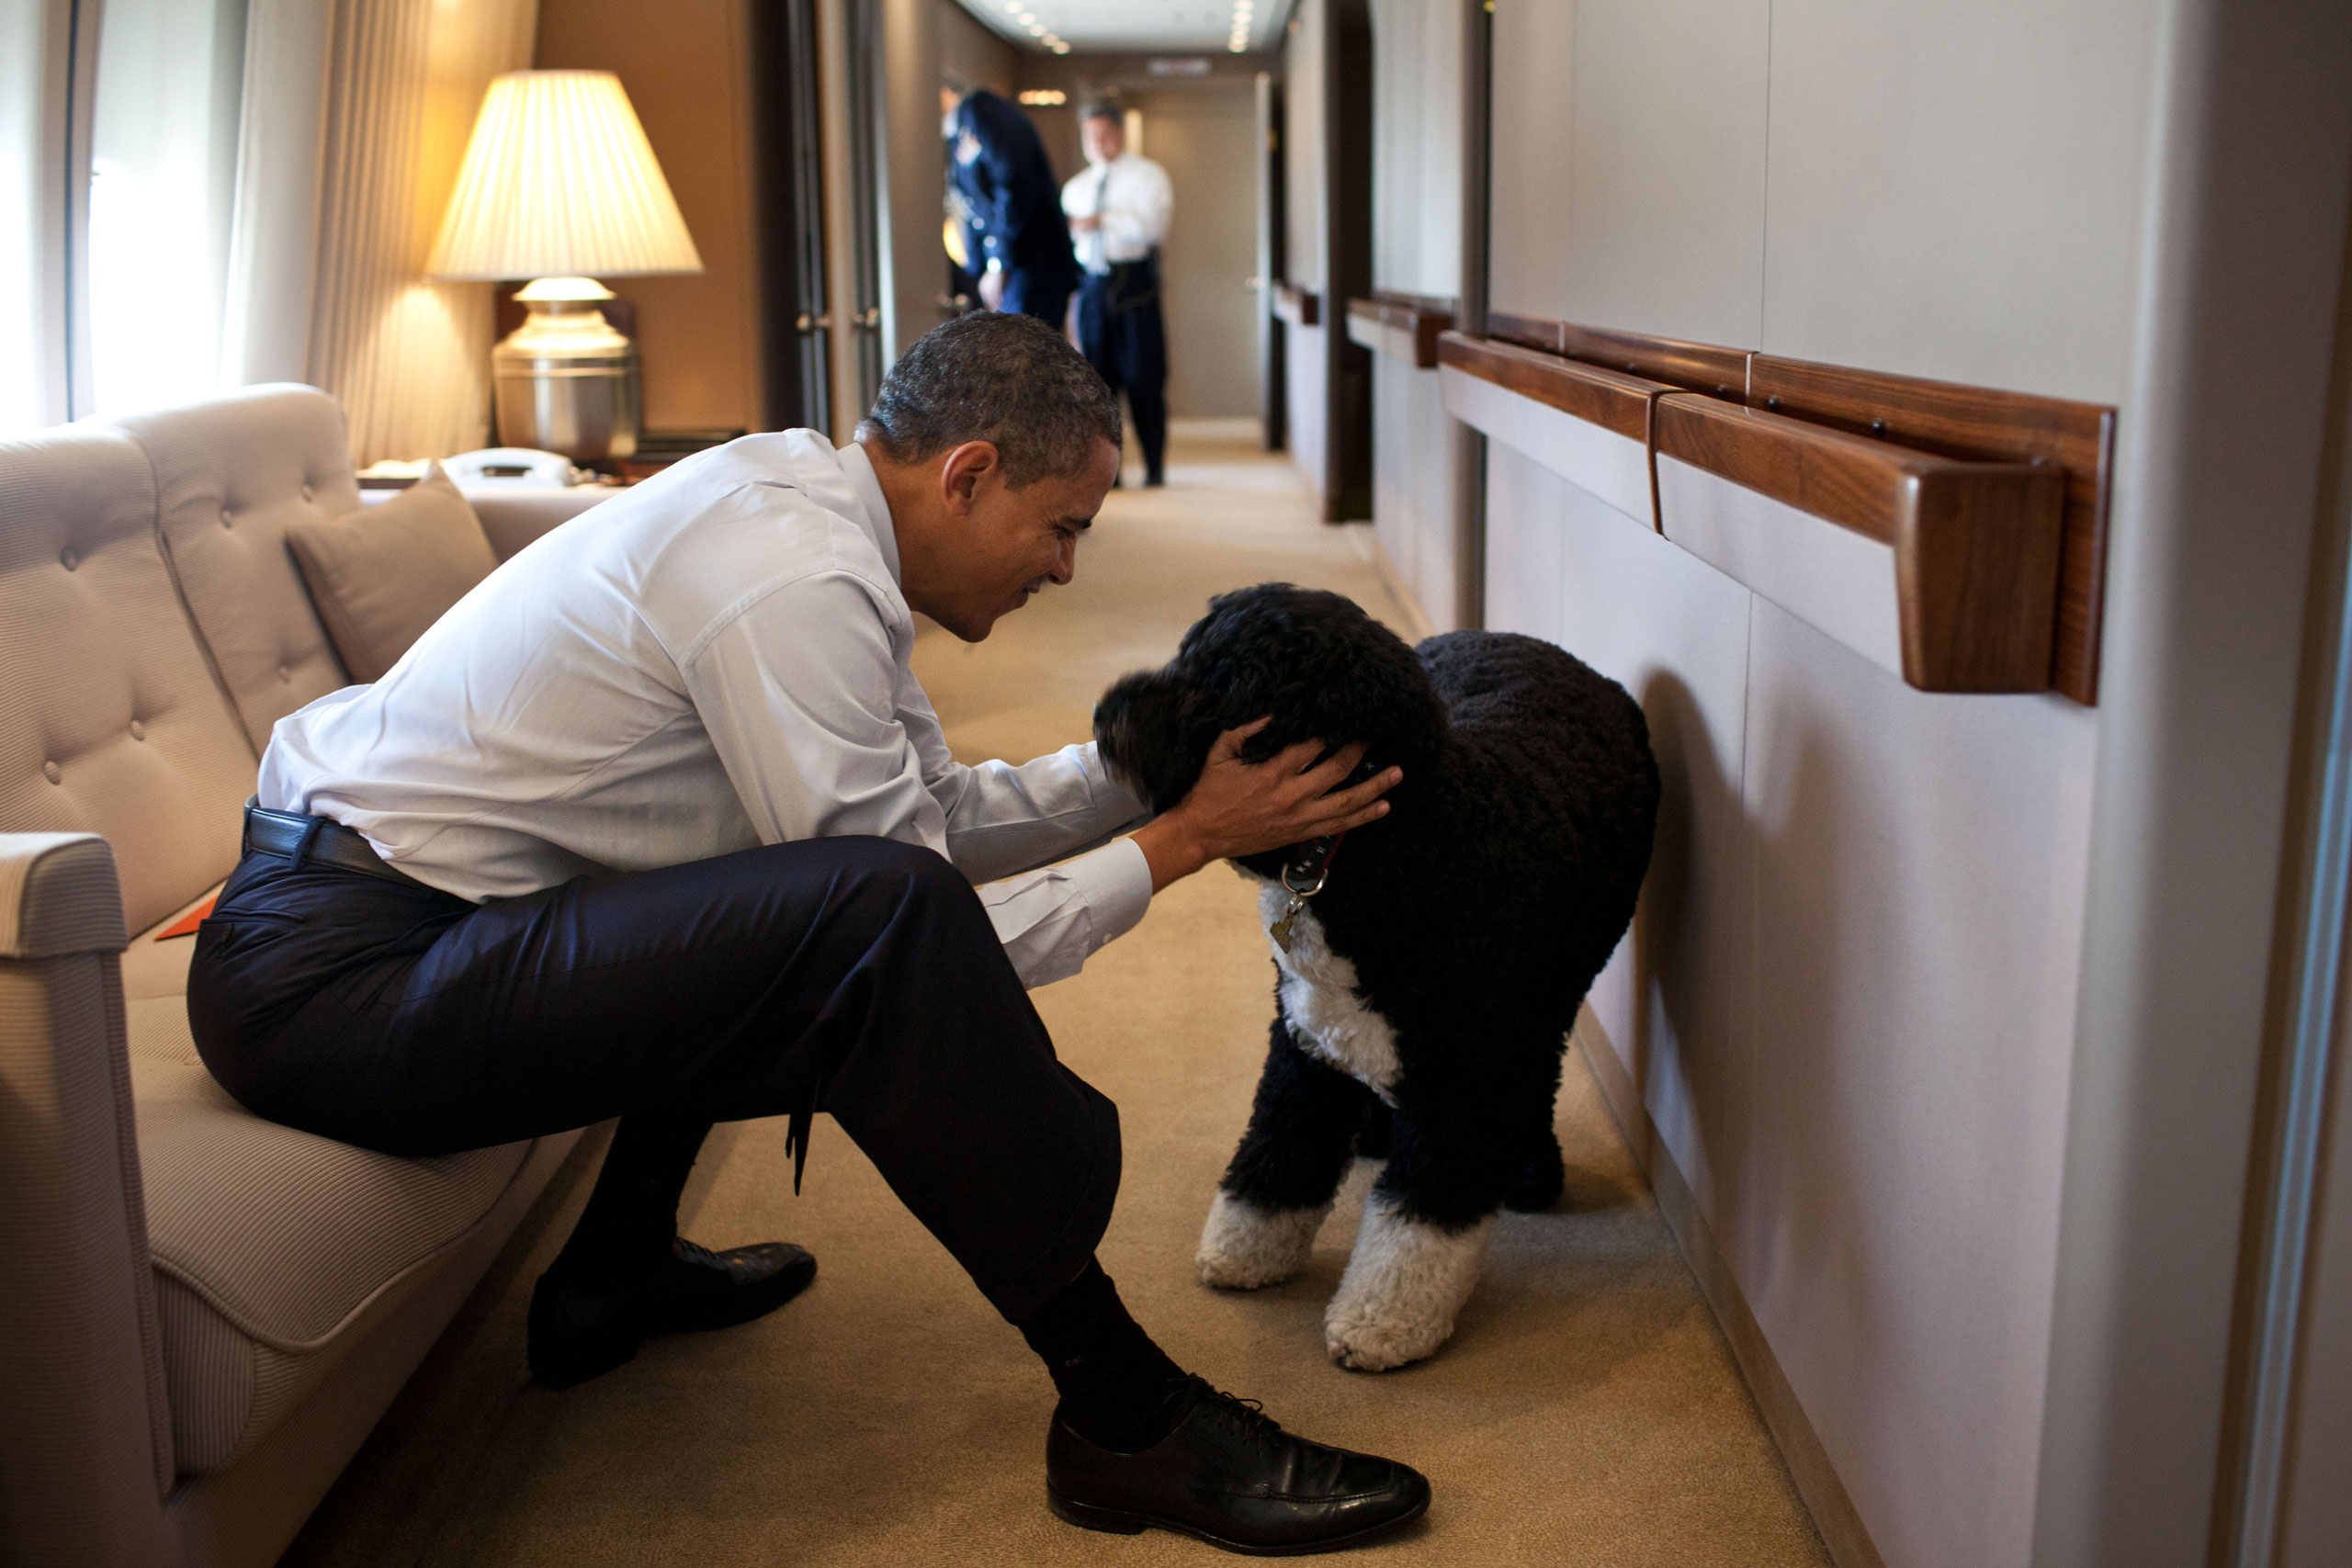 President Barack Obama plays with Bo, the Obama family dog, aboard Air Force One during a flight to Hawaii, Dec. 23, 2011.